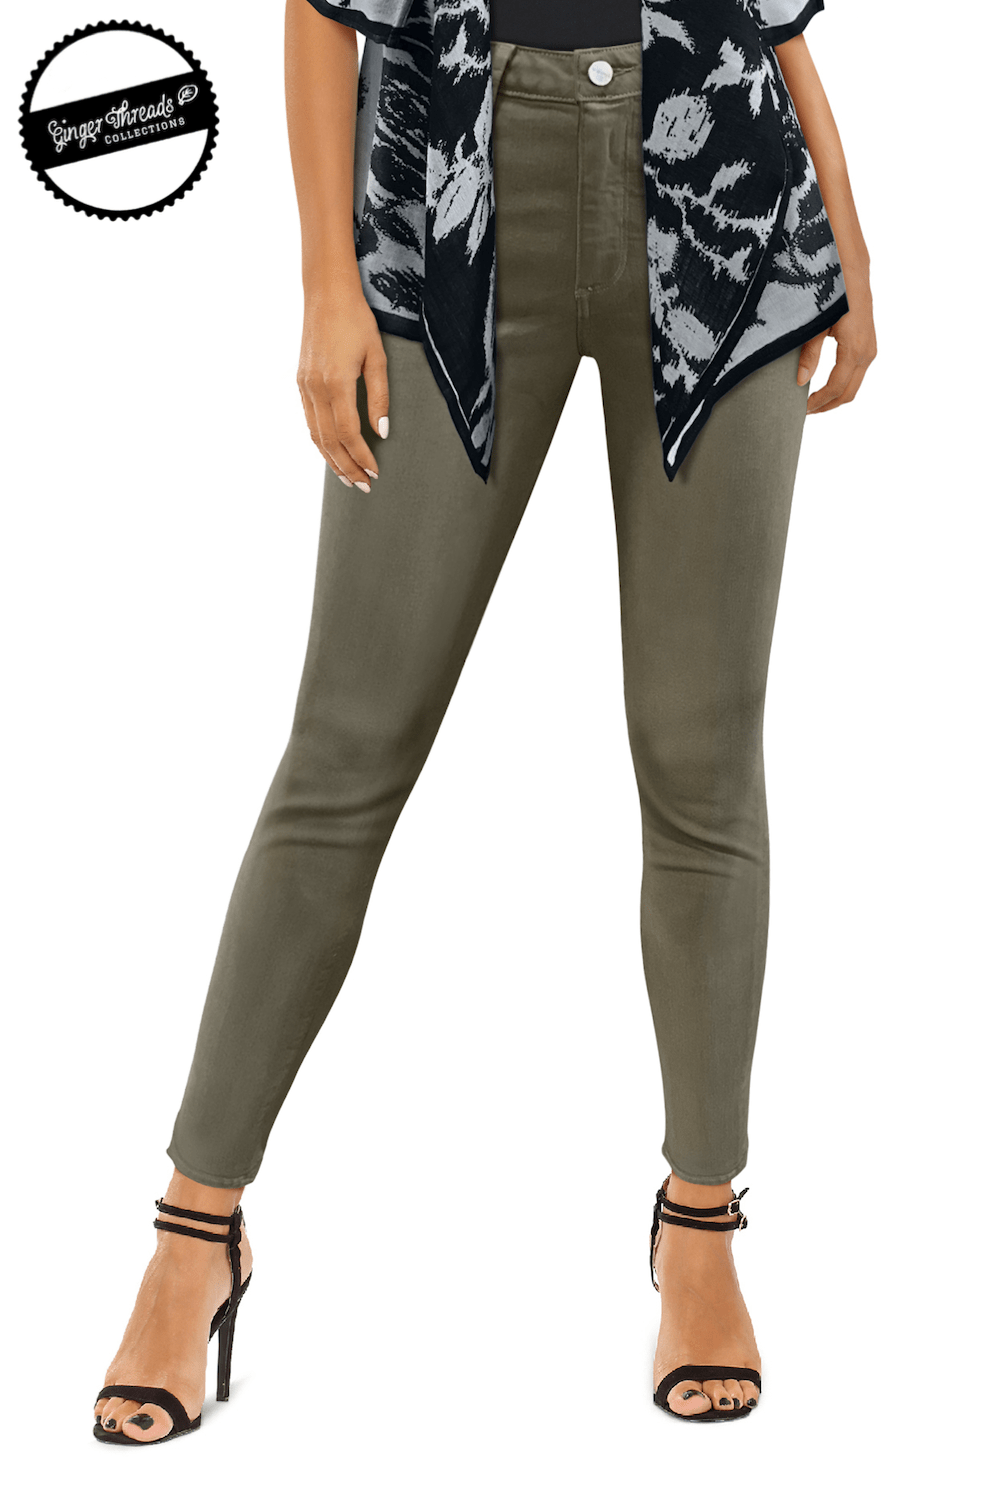 Ginger Threads Collections jeans Sage Cropped Mid-Rise Jeans